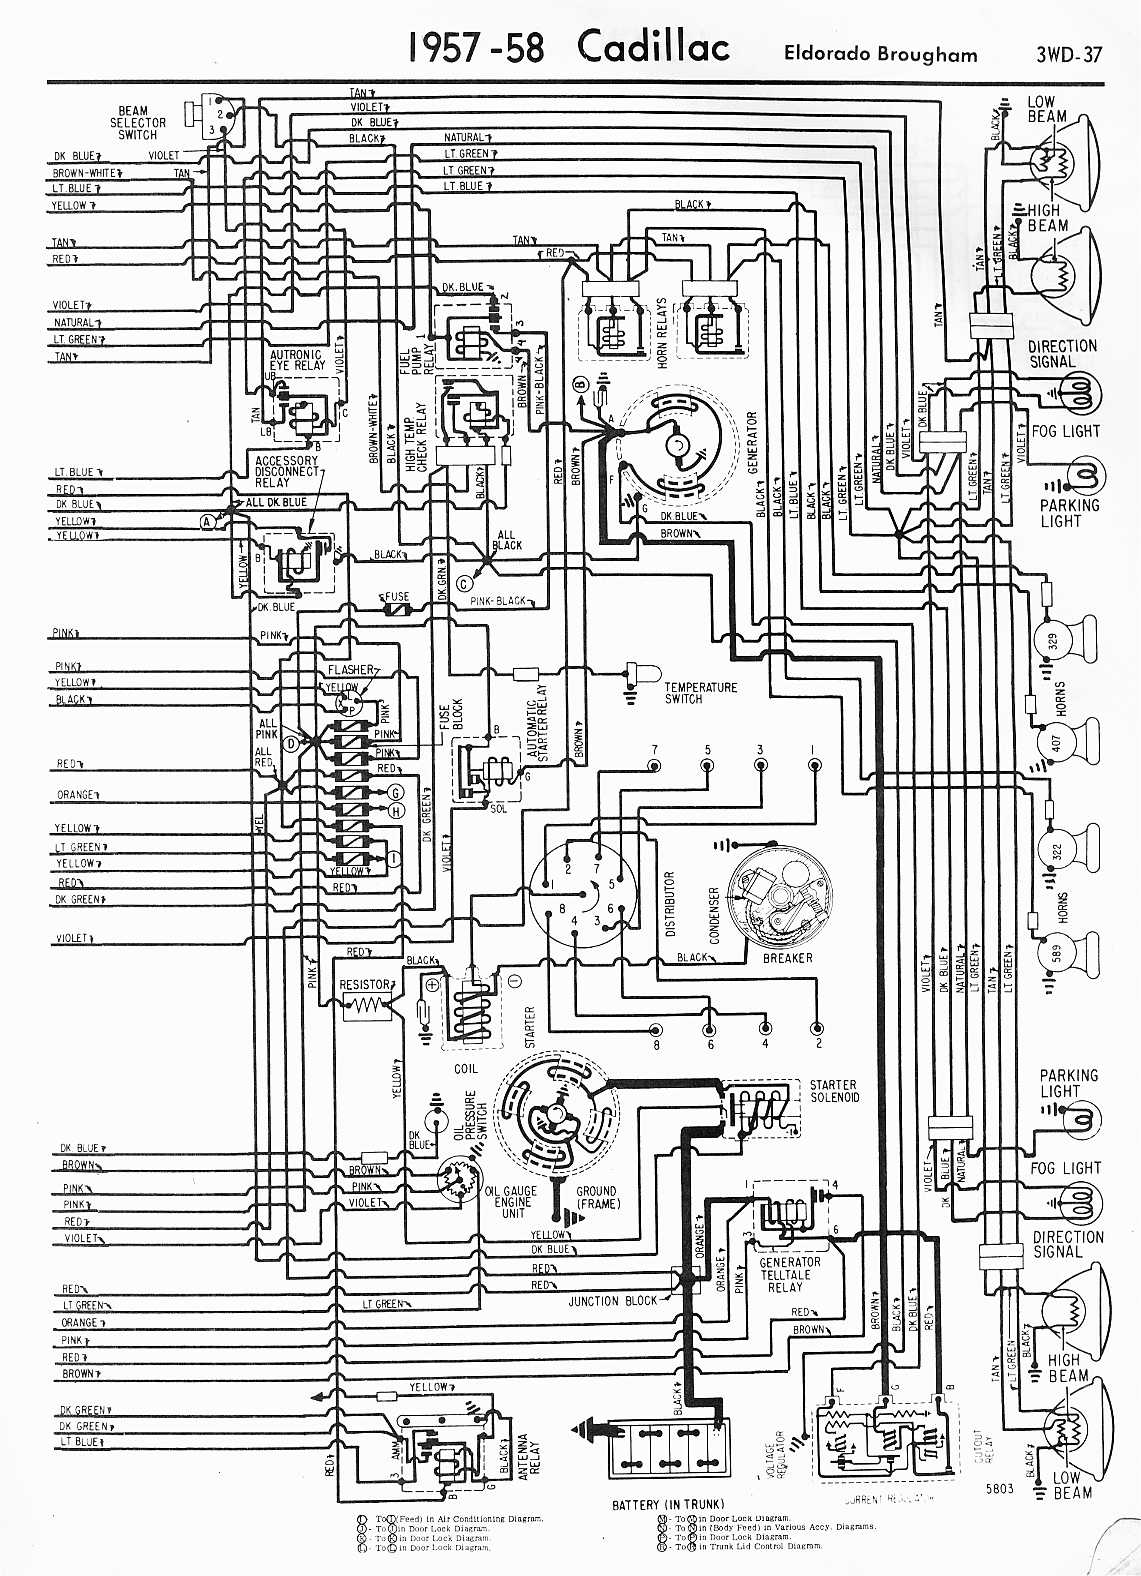 66 Cadillac Wiring Diagram Schematic Just Another 53 Schema Diagrams Rh 50 Justanotherbeautyblog De 1993 Allante Fuses 2005